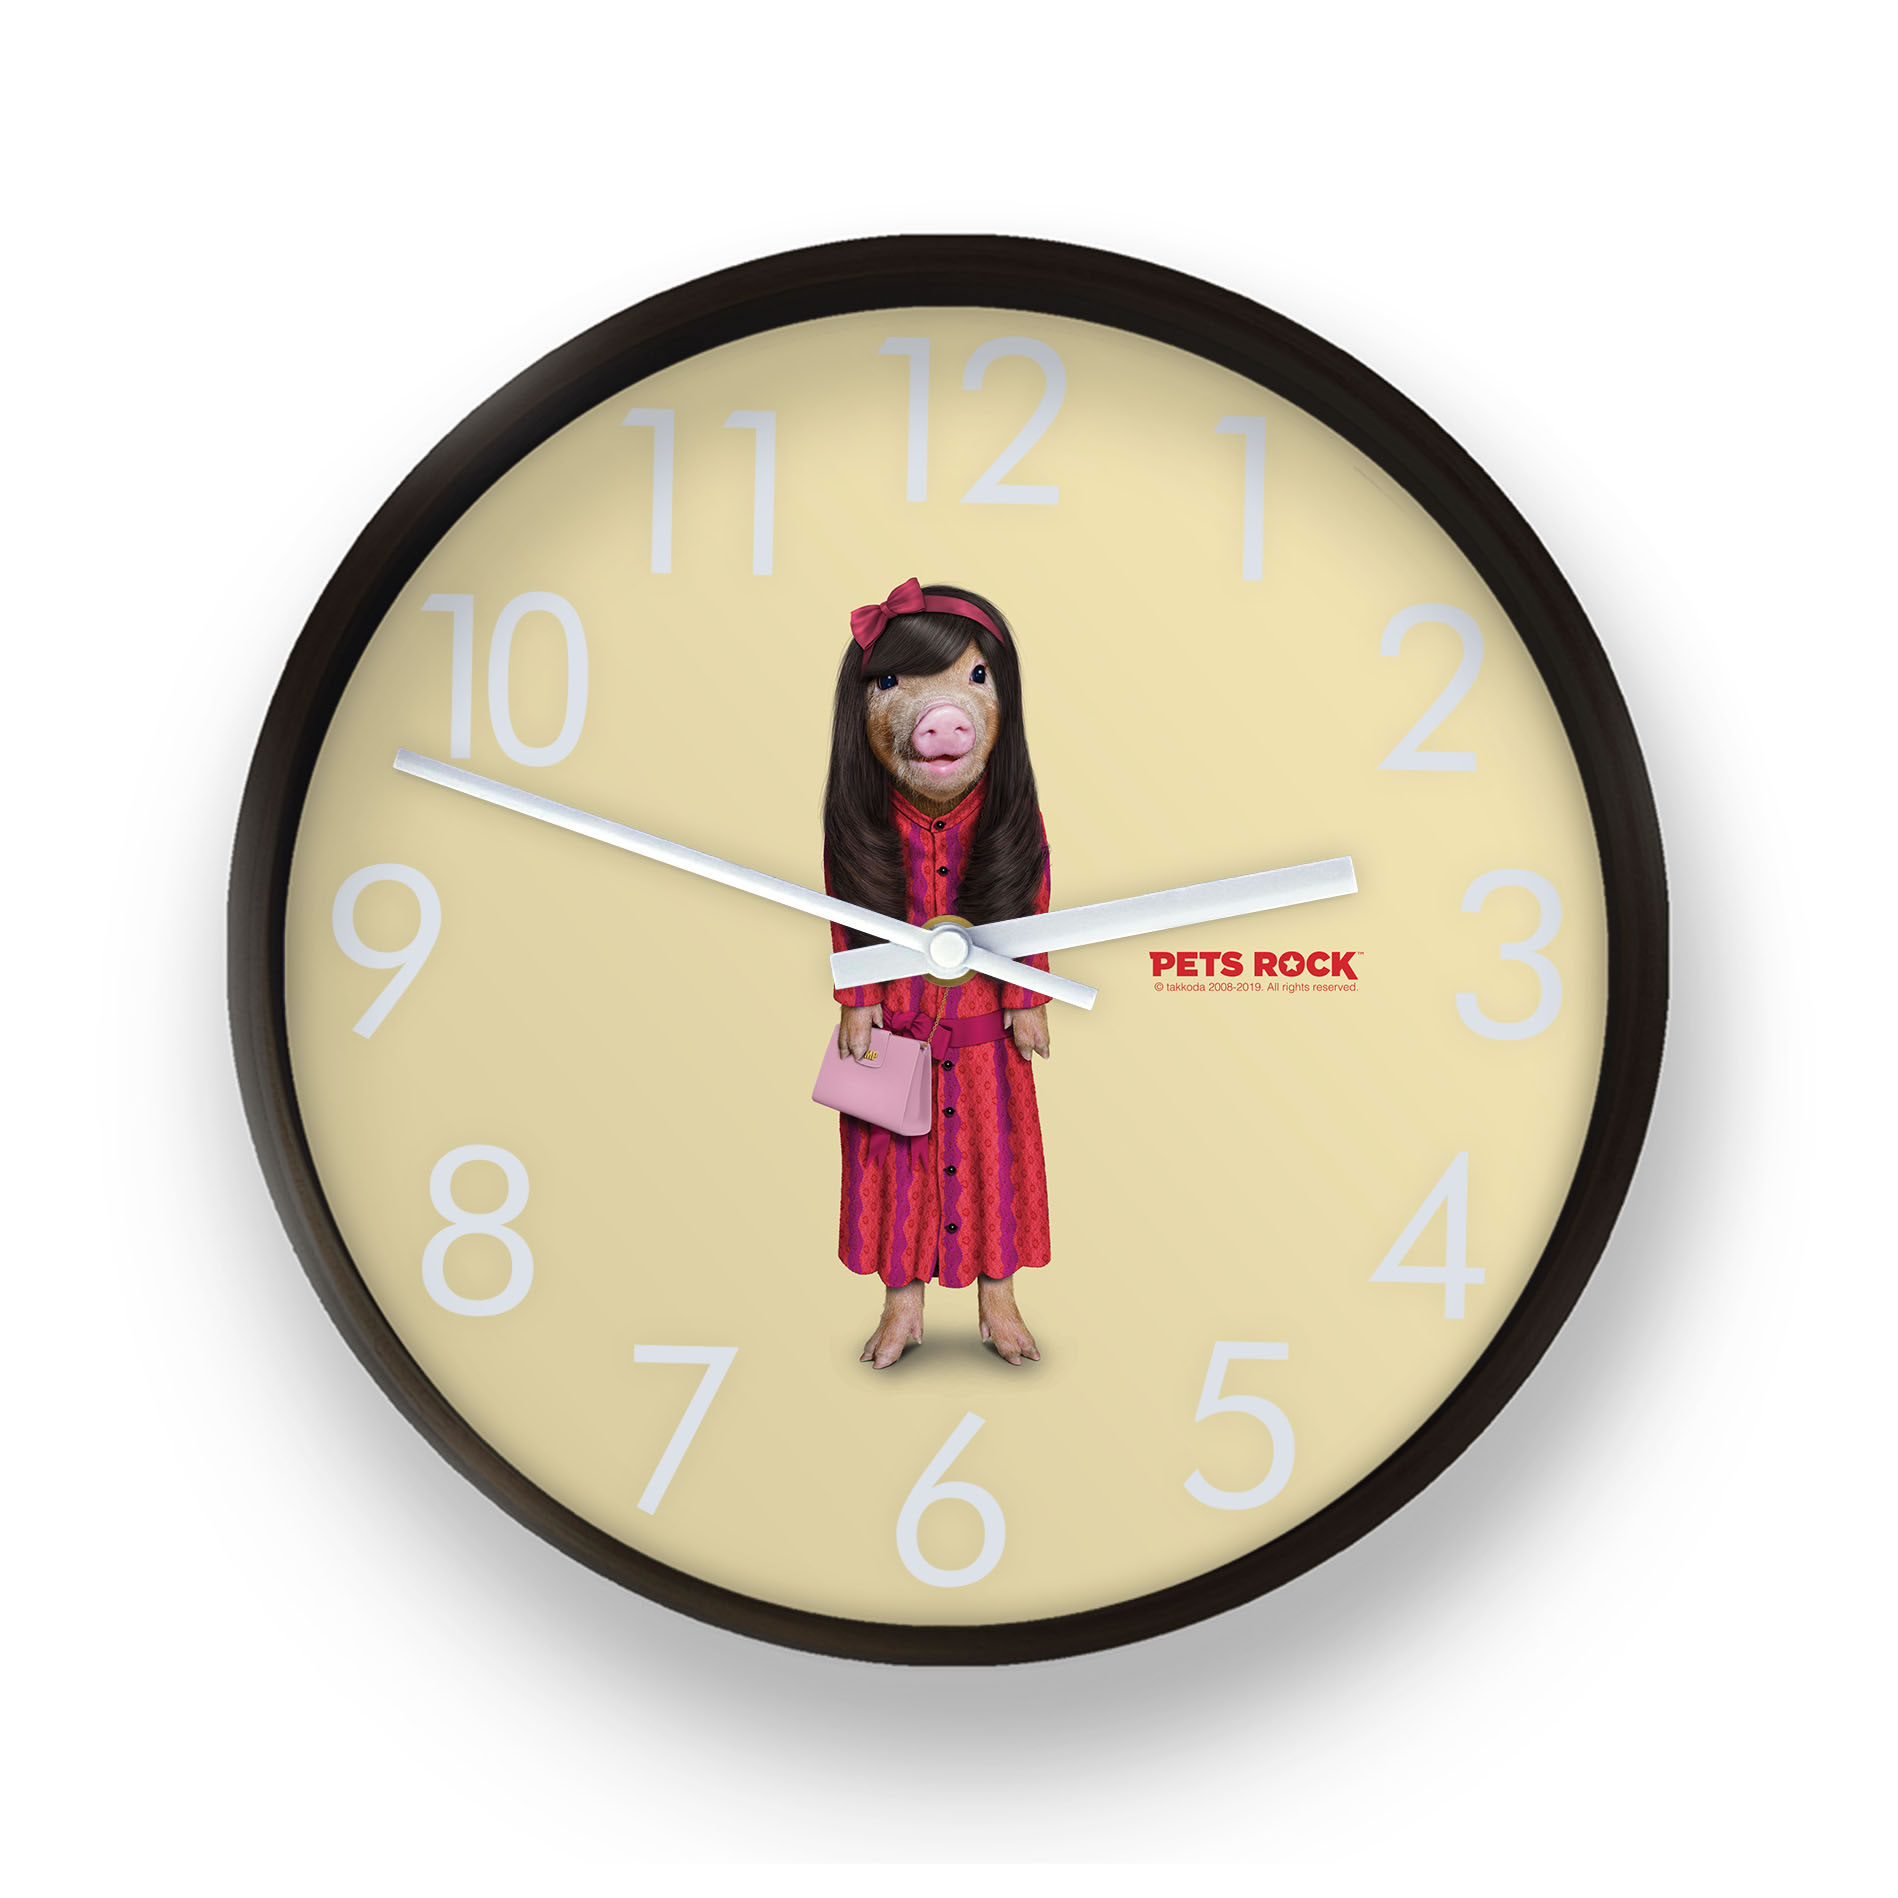 Patsy Pets Rock Wall Clock